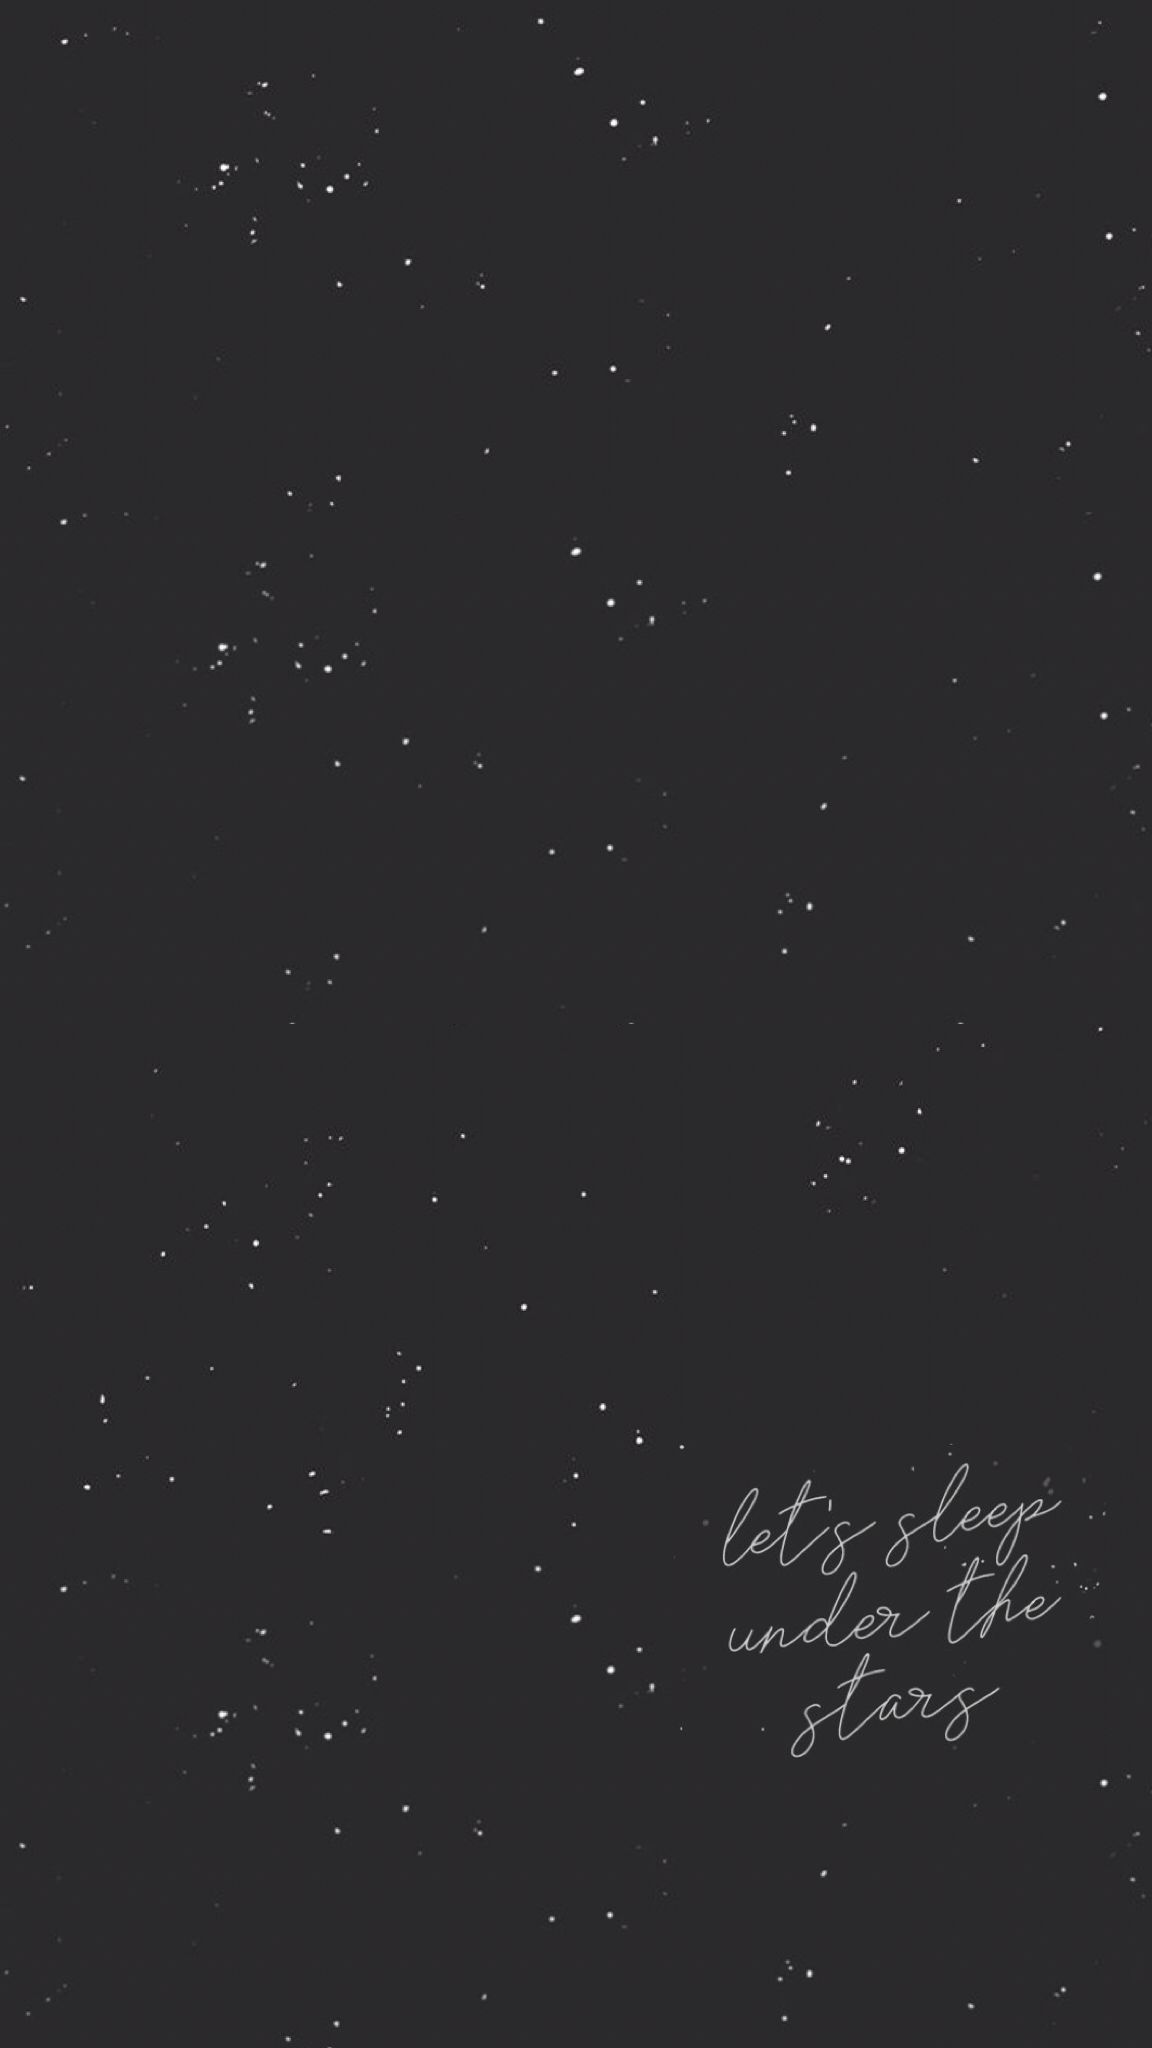 New Top 10 Best Black Background For Iphone 11 Pro Max Wallpaper Quotes Wallpaper Iphone Quotes Quote Aesthetic